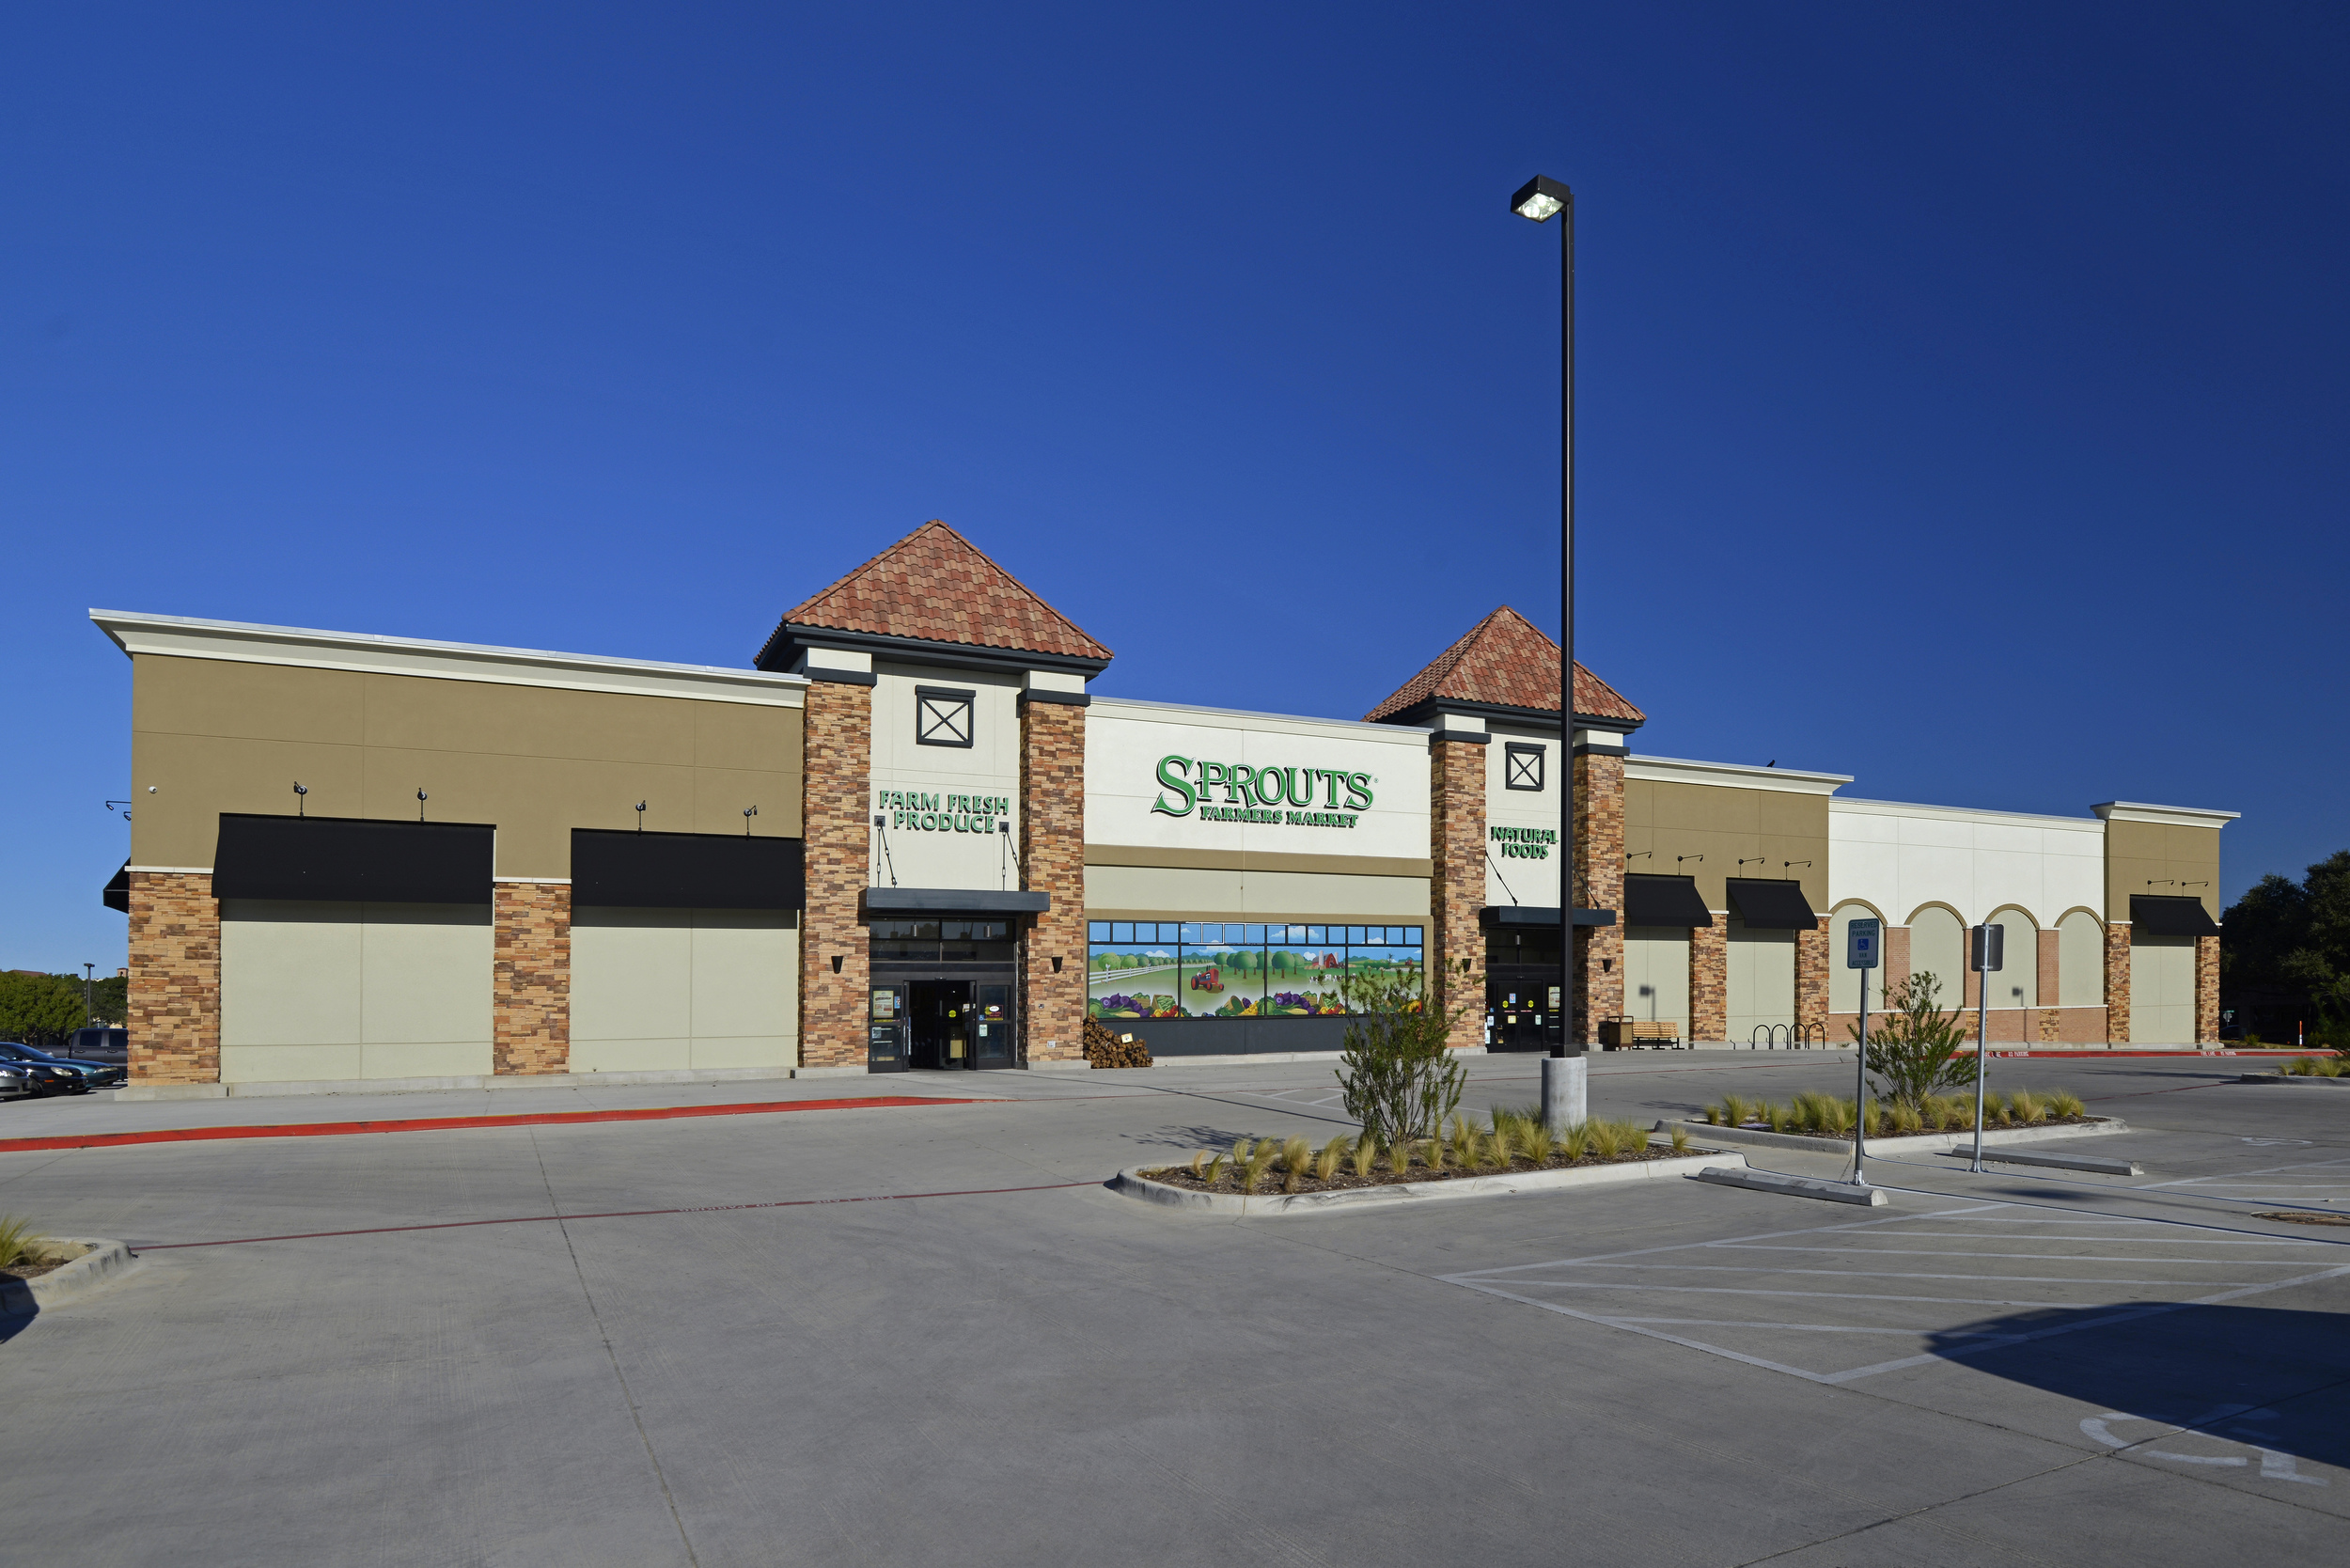 Sprouts Farmers Market, Fort Worth, TX